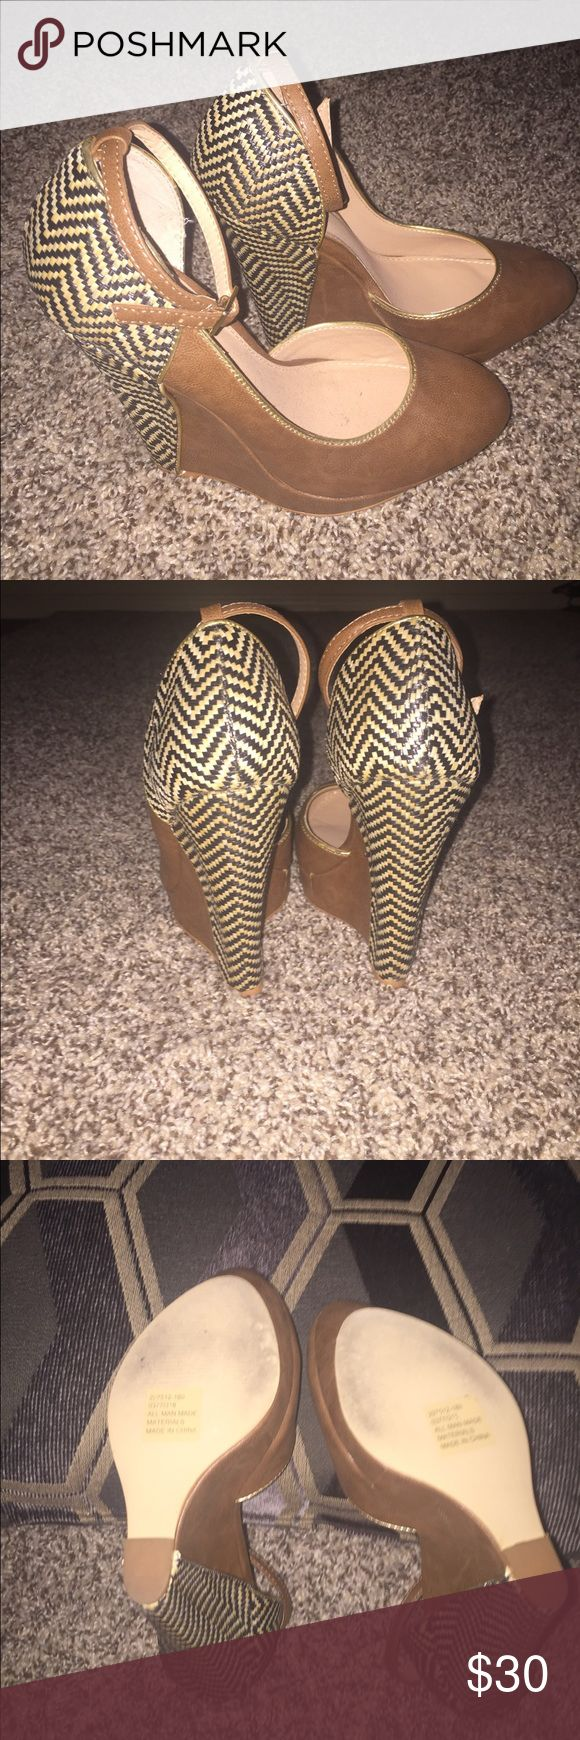 "Wedges for SALE Super cute closed-toe wedges w/strap! Aztec print. 4""wedge. Worn twice and in excellent condition. No scratches or scuff marks. True to size. Price Firm. No Trades❌ Colin Stuart Shoes Wedges"